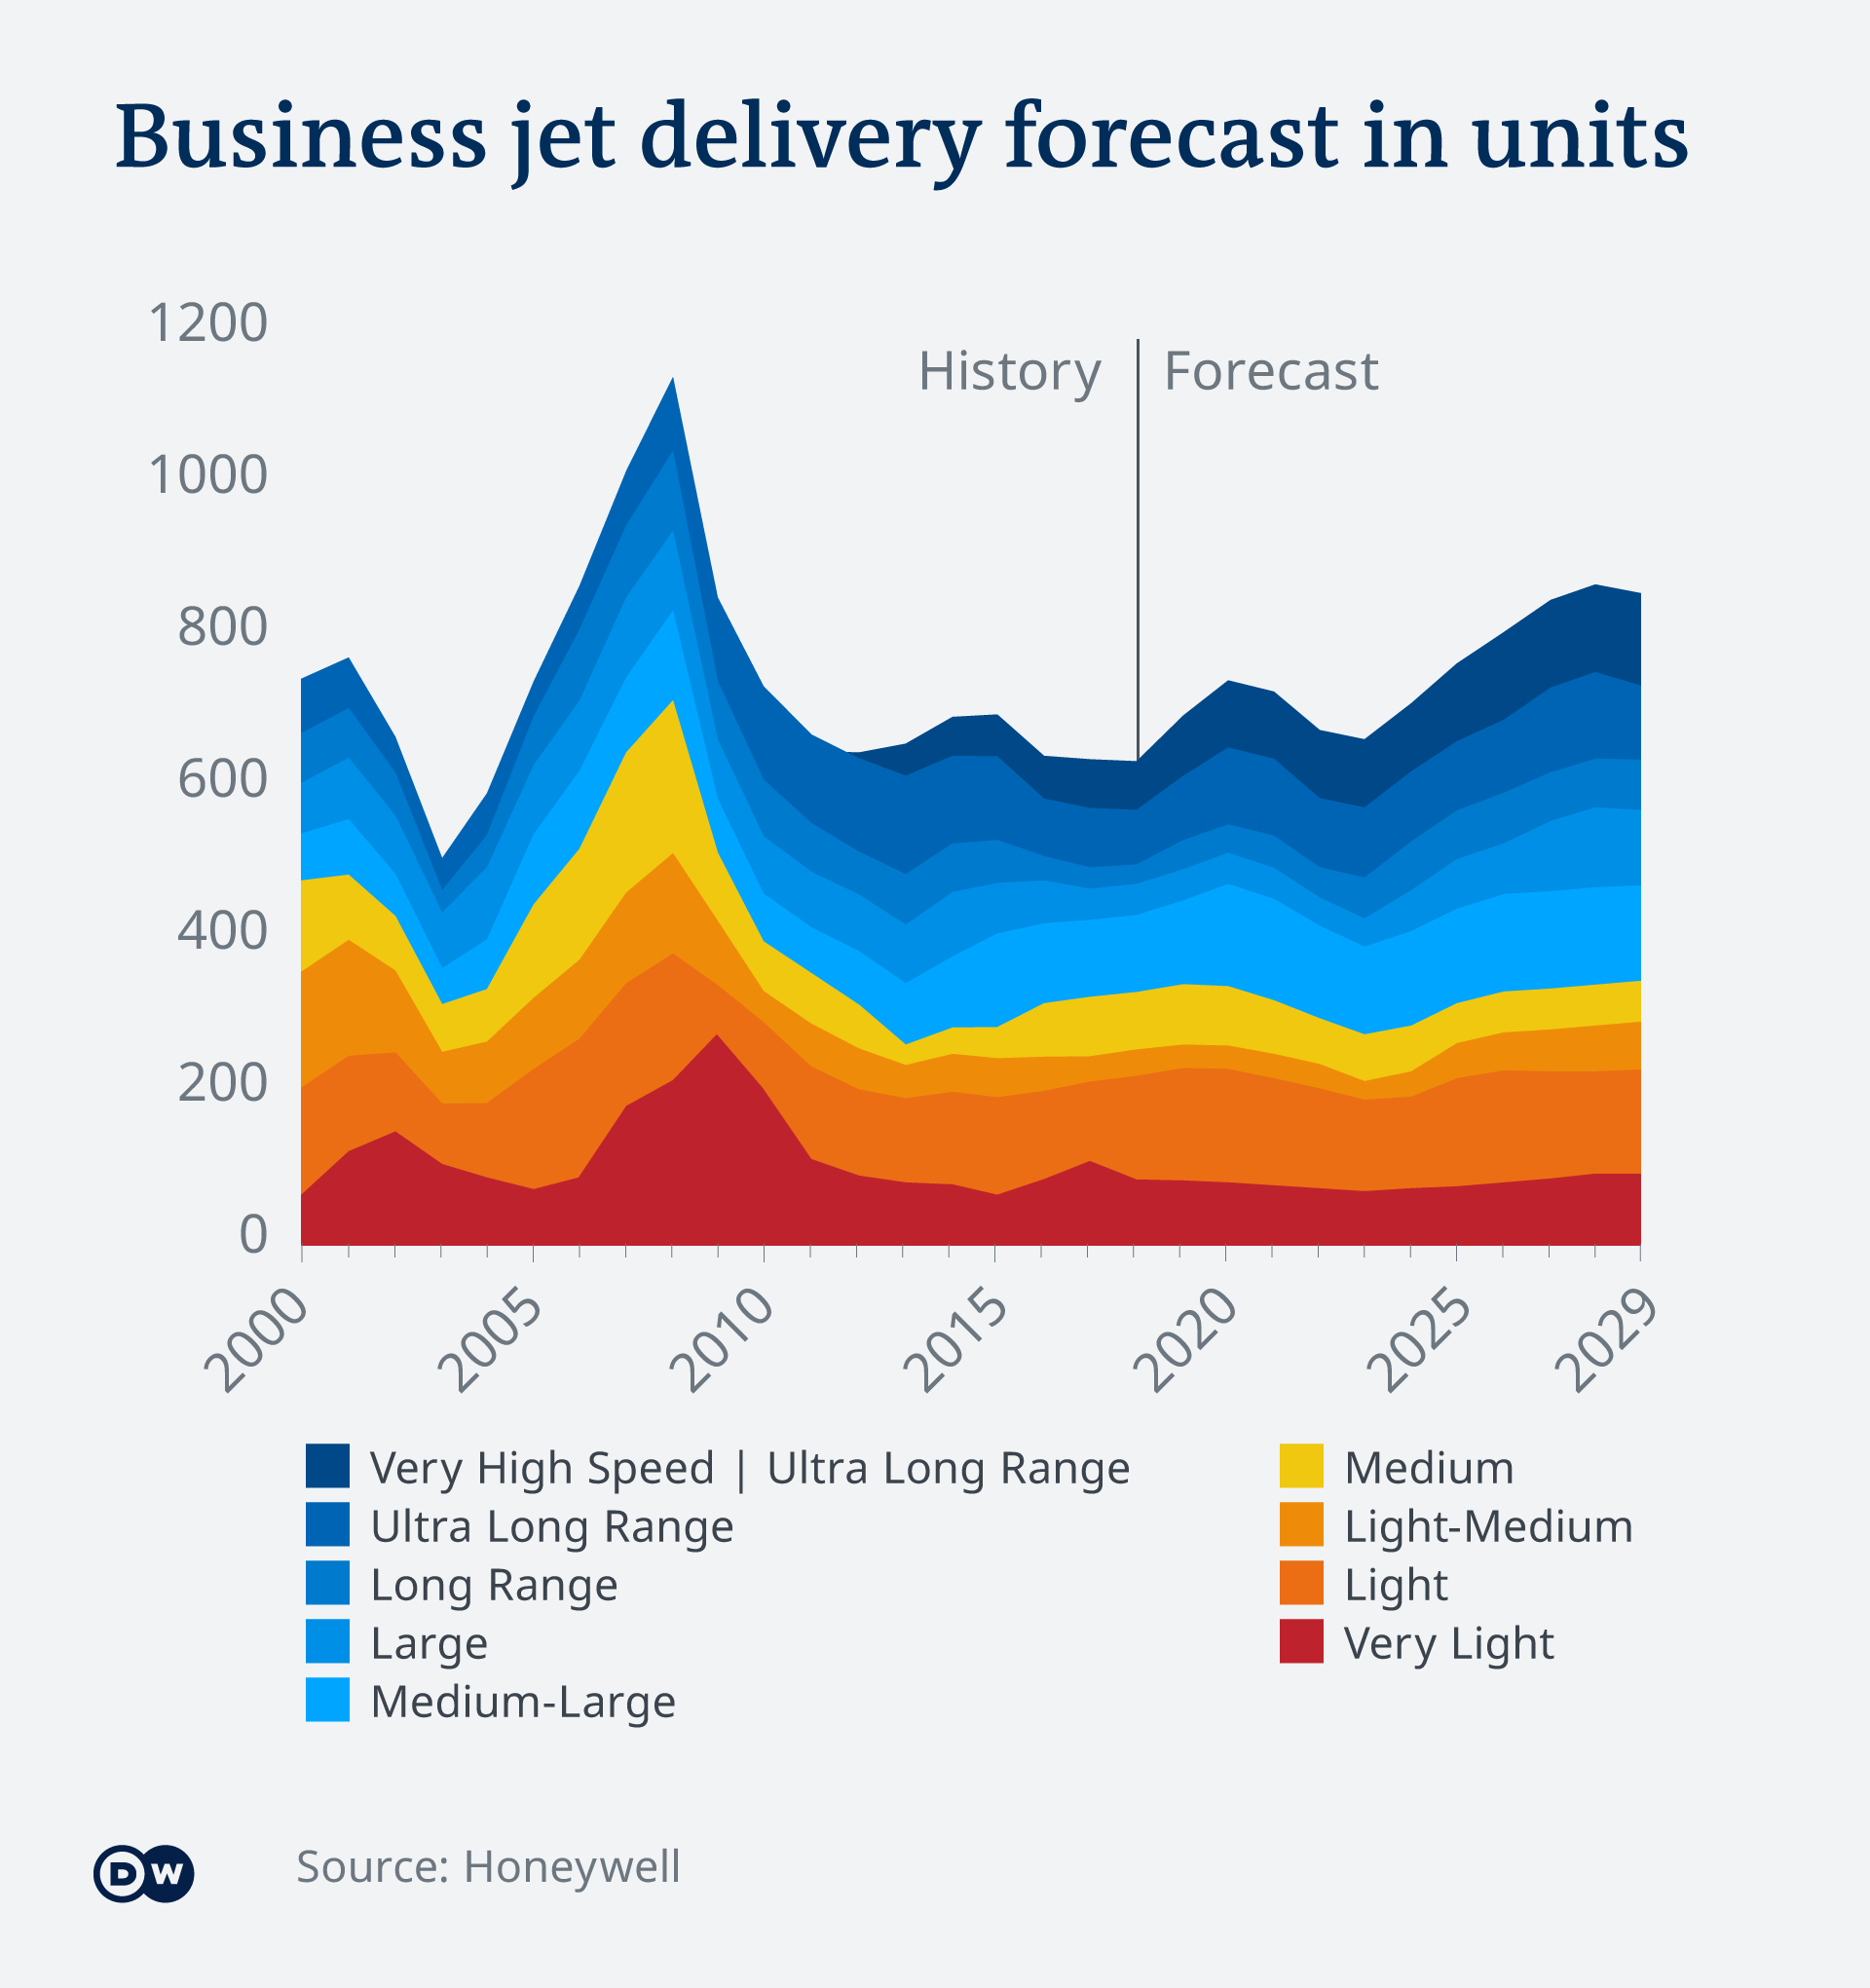 Business jet delivery forecast in units